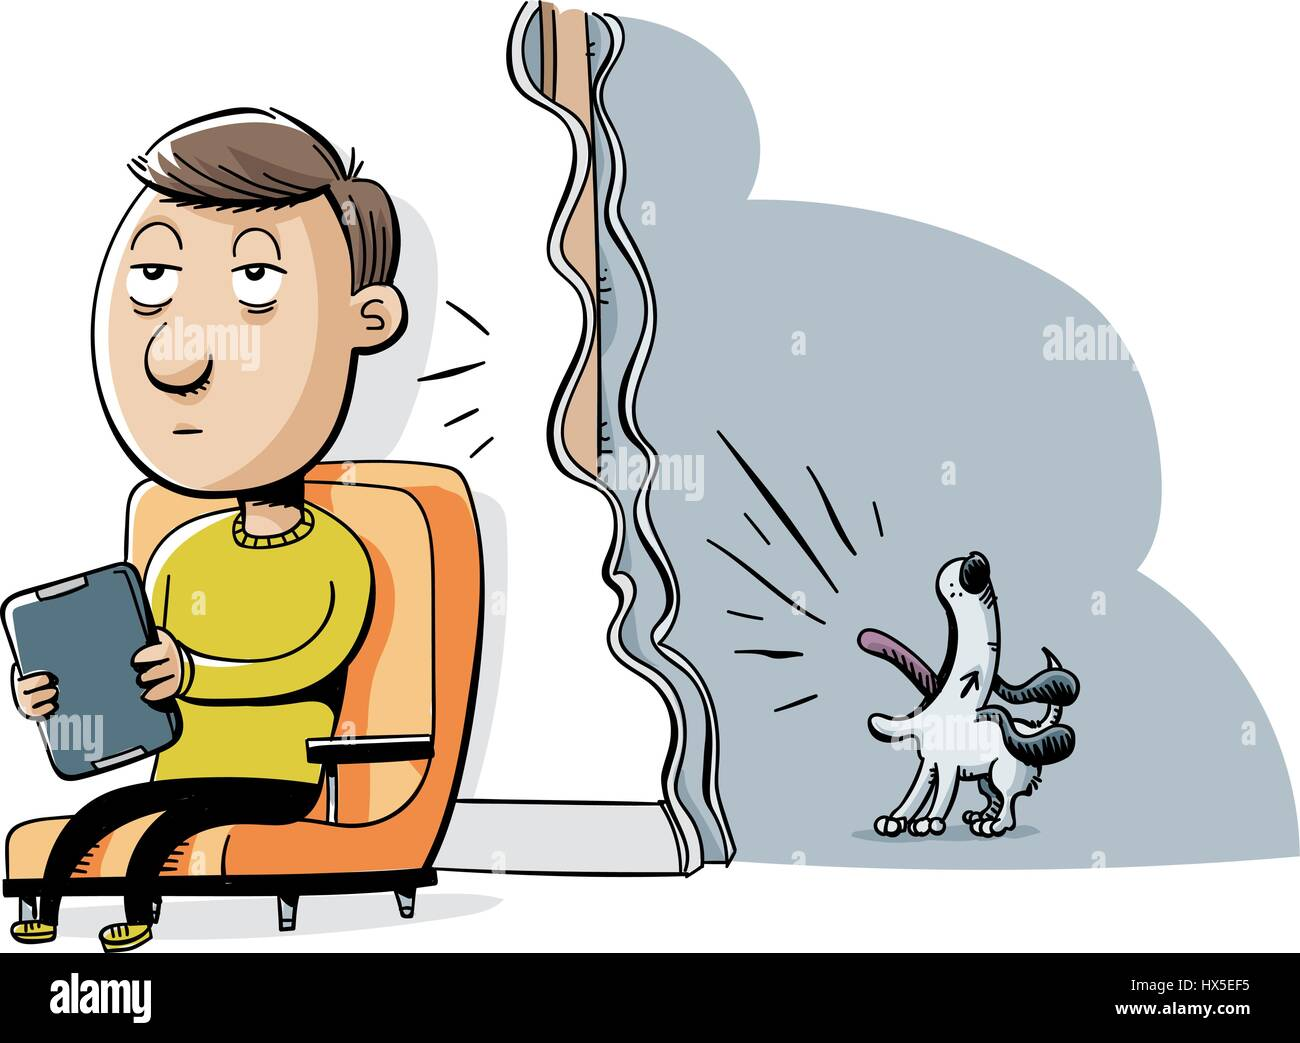 A cartoon man tries to enjoy quiet time but is distracted by a dog barking in a neighbouring room. - Stock Image